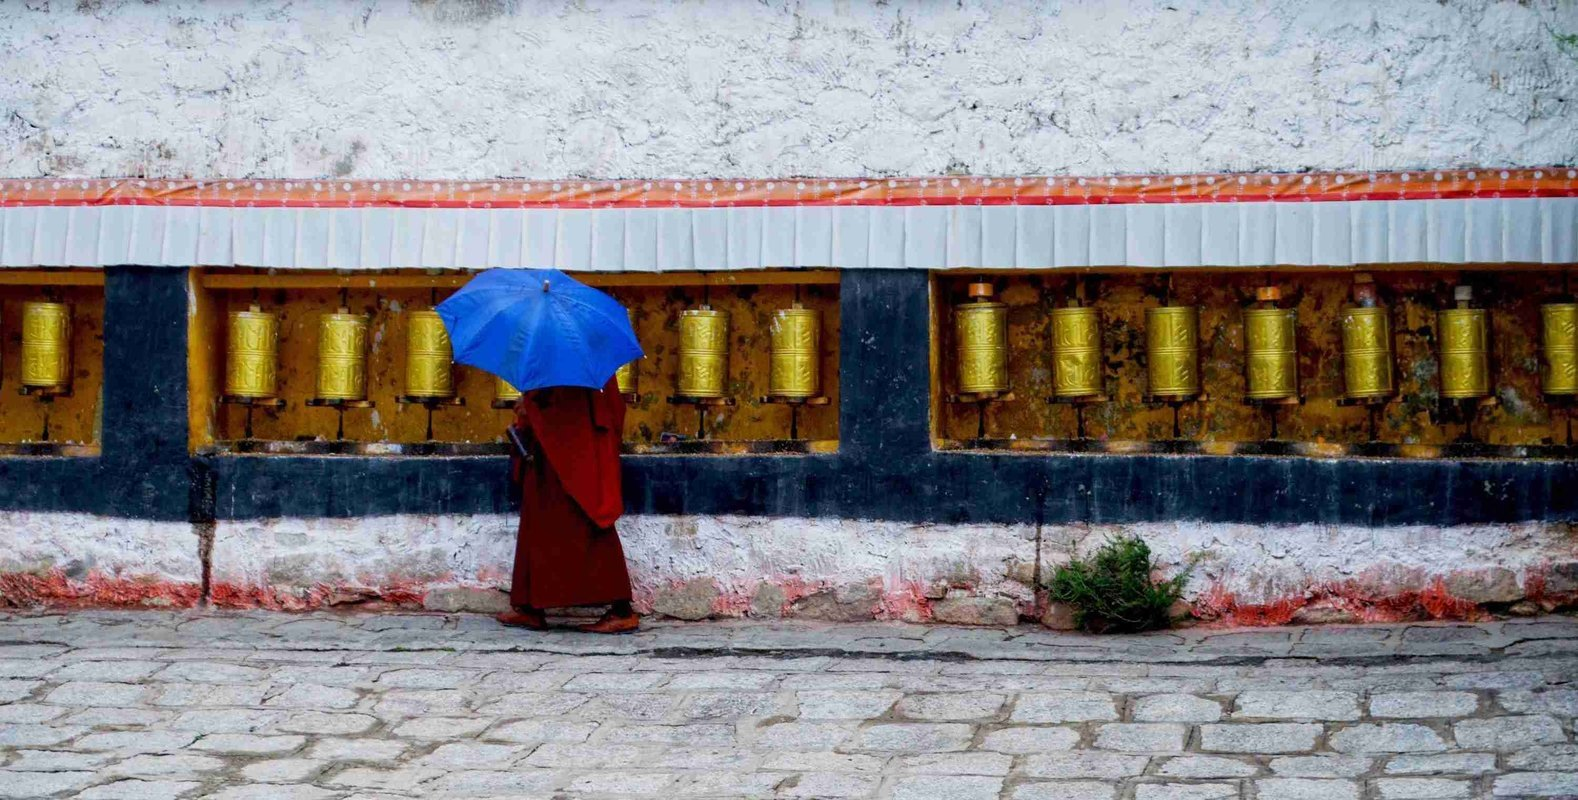 Buddhist Pilgrimage Tours - Collection